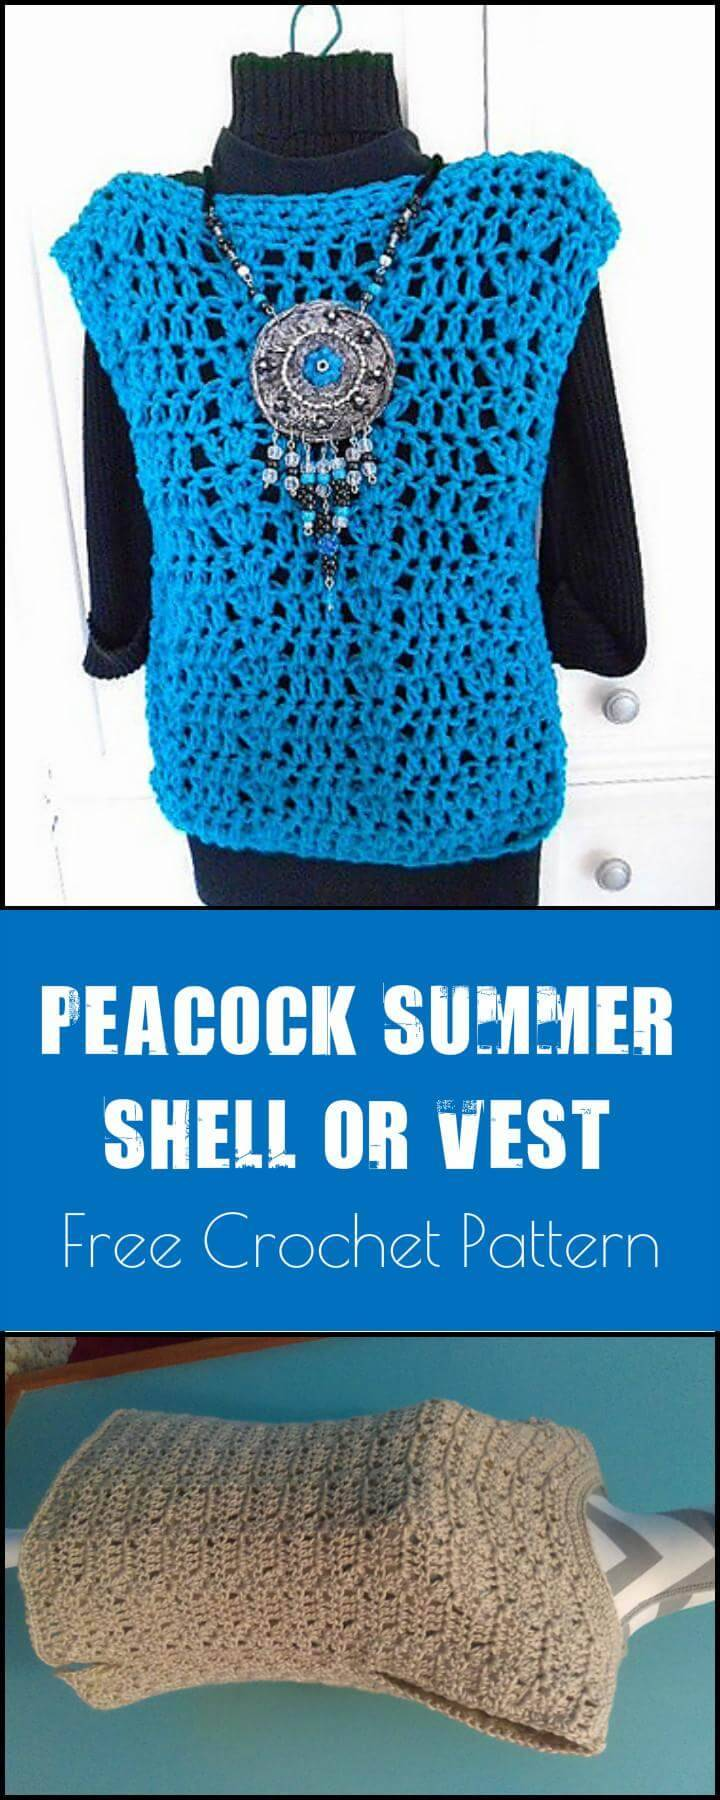 Peacock Summer Shell or Vest Free Crochet Pattern